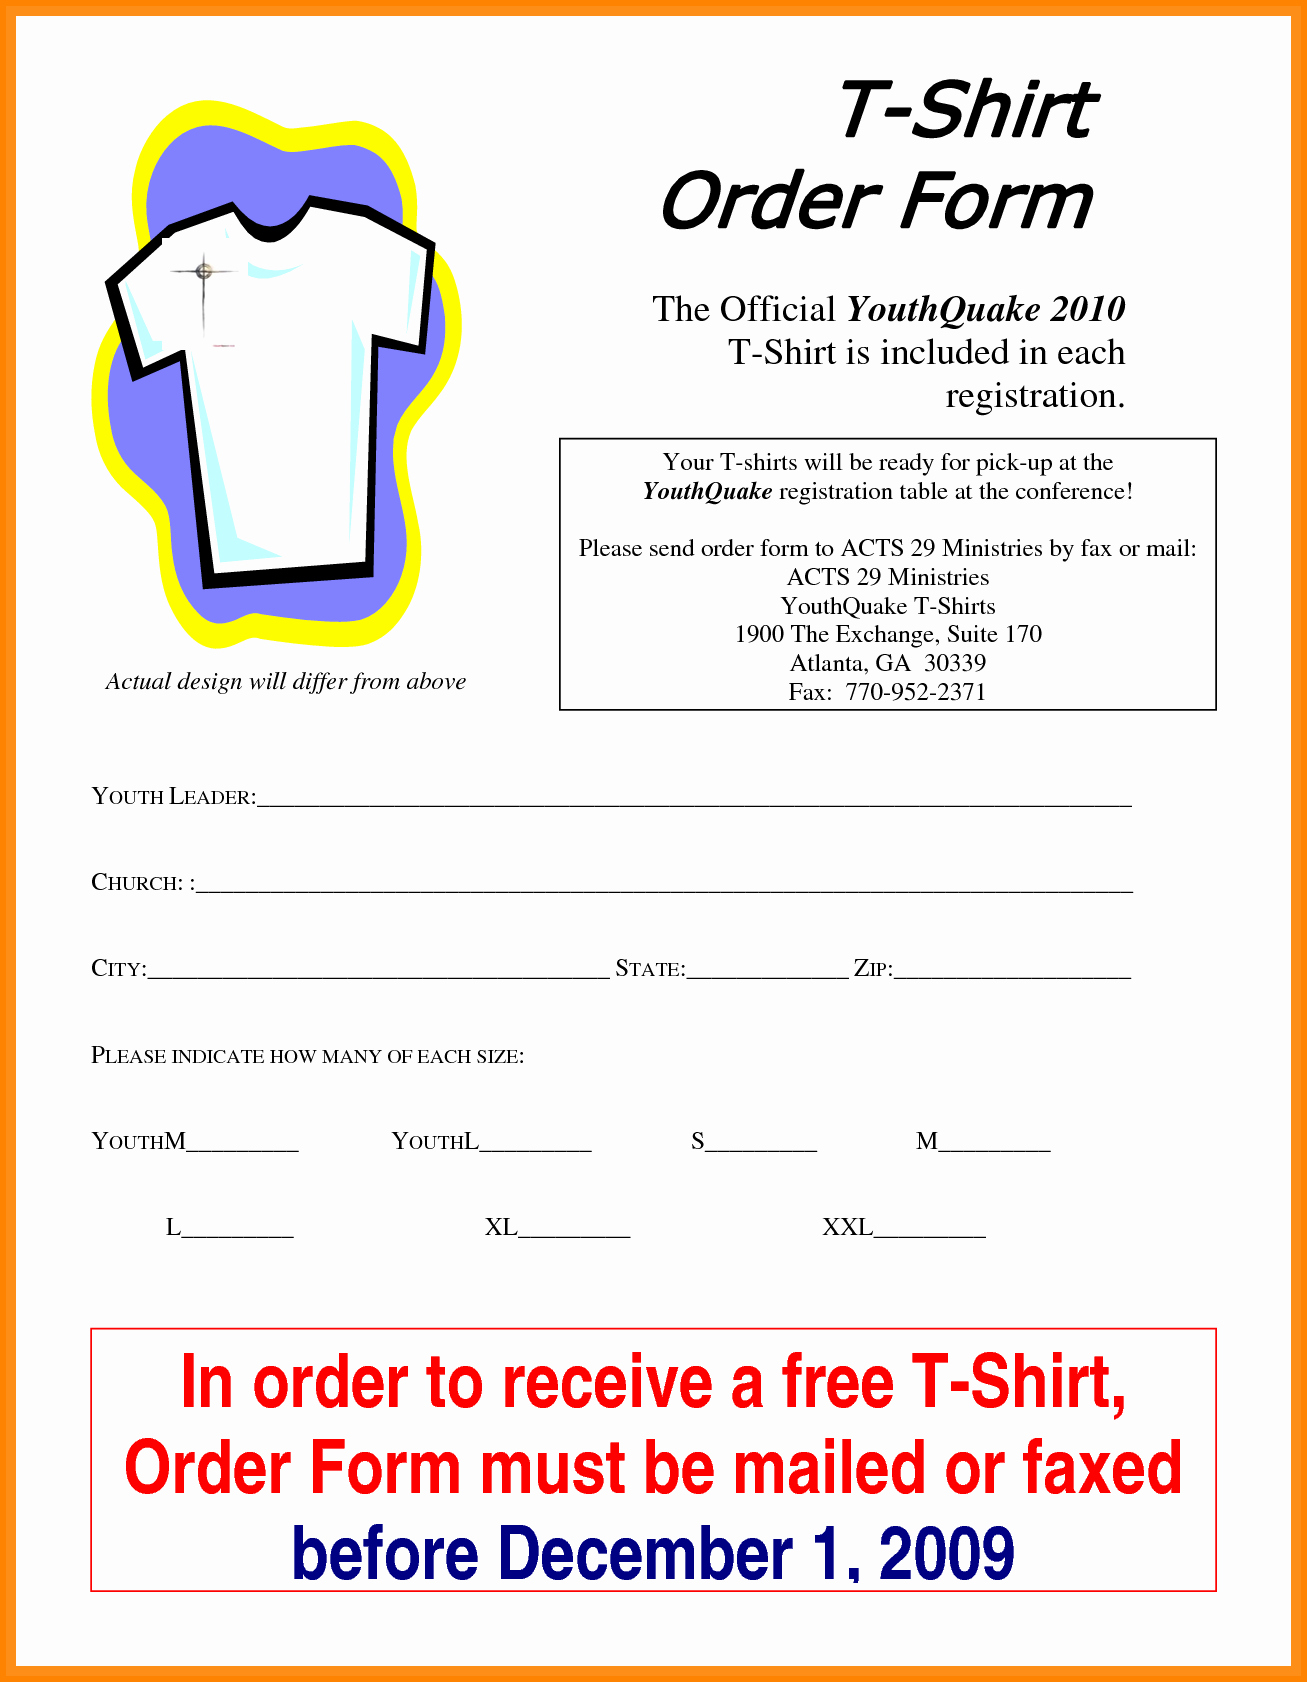 Clothing order form Template Excel Best Of 5 T Shirt order form Template Excel